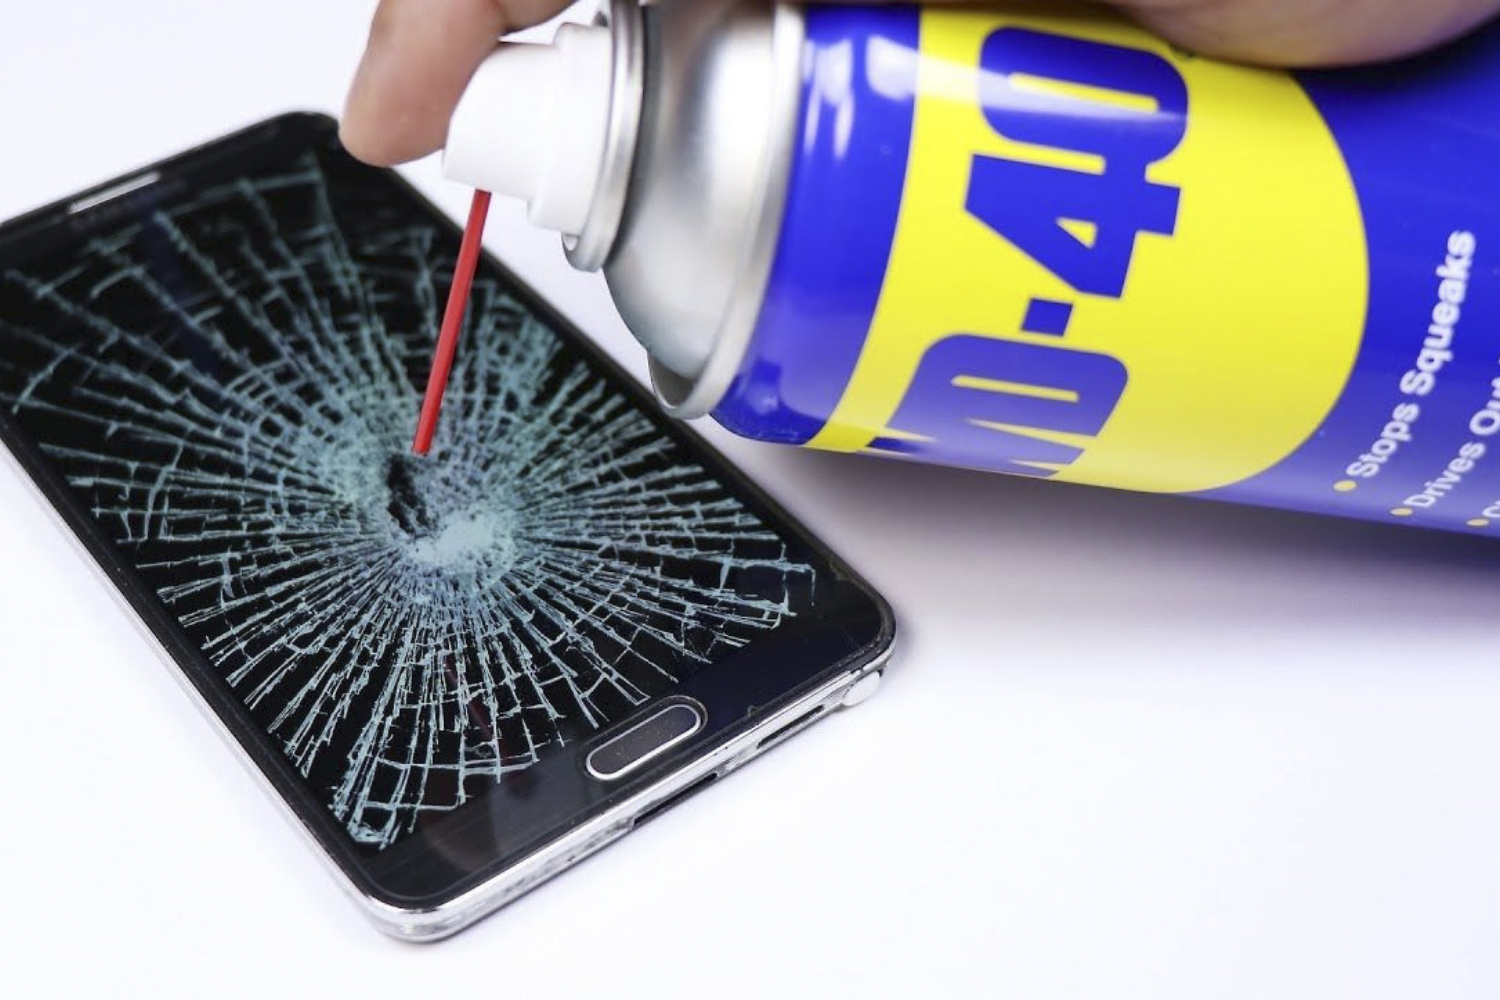 25+ Ways WD-40 Is More Useful Thank You Think